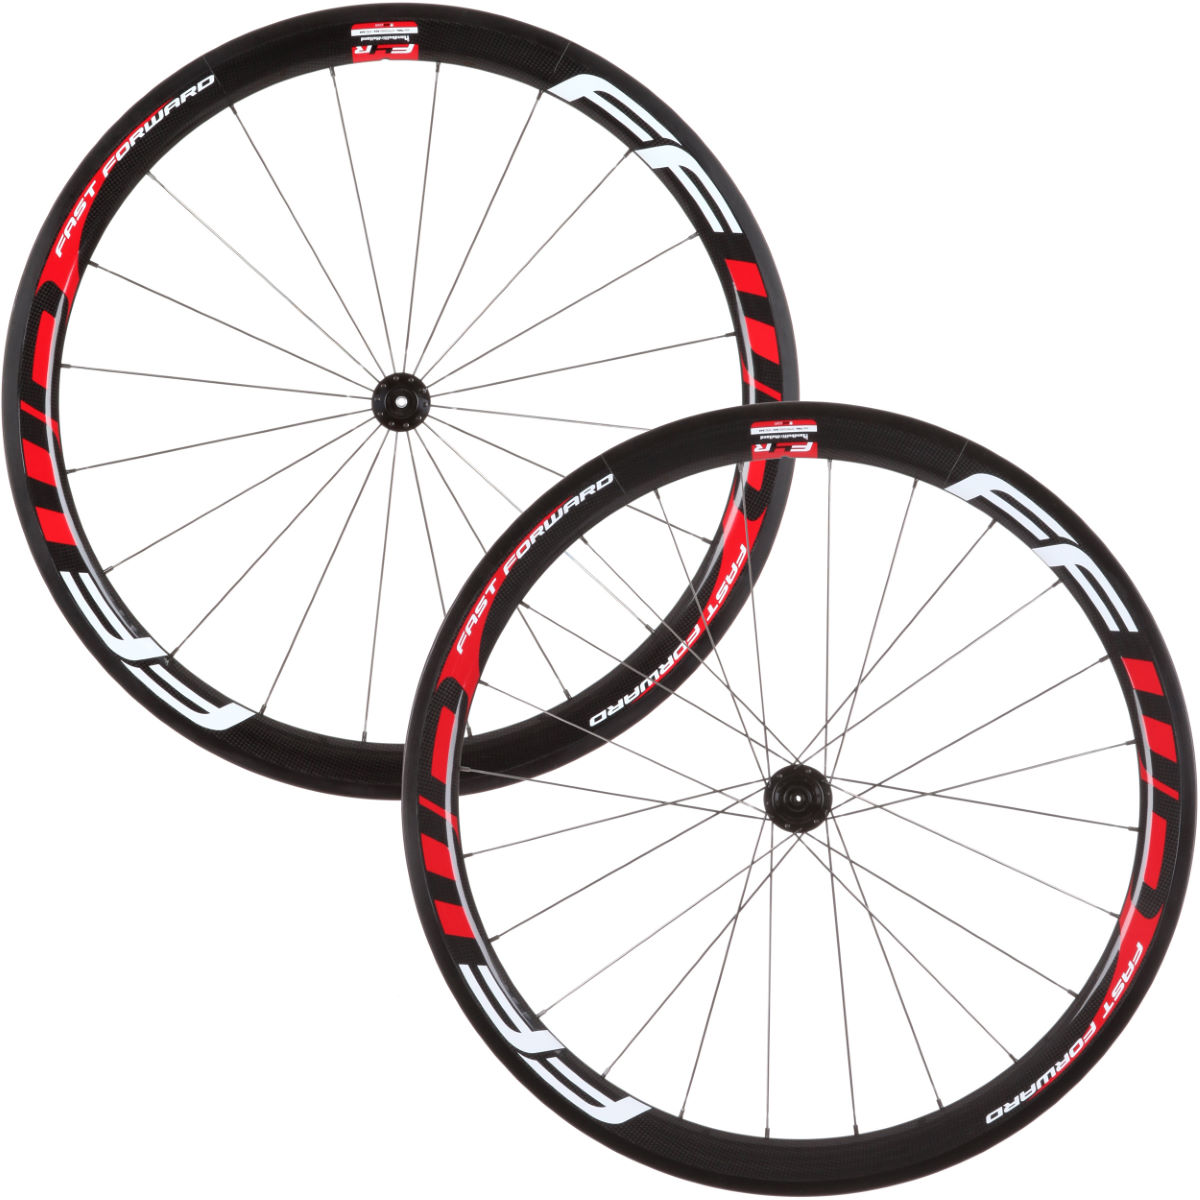 Fast Forward F4R Carbon Tubular 240s Wheelset   Performance Wheels